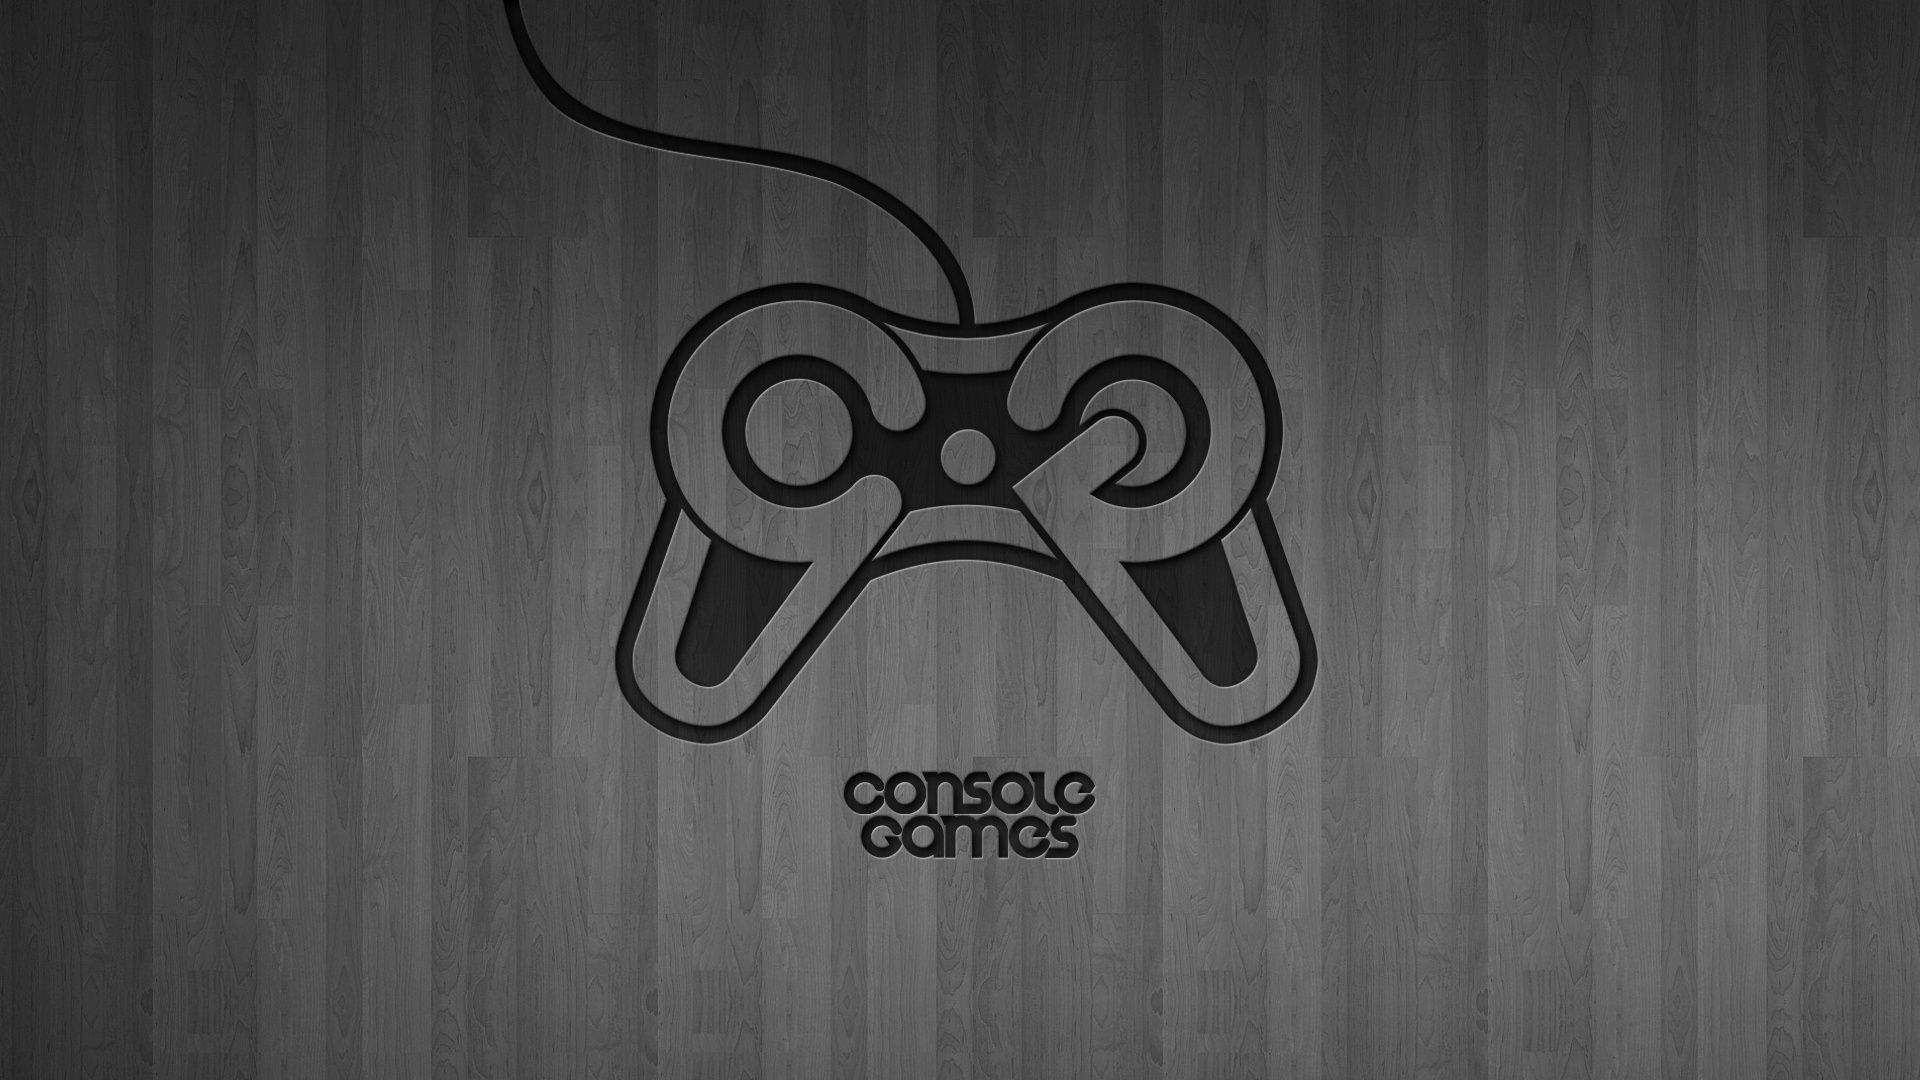 Hd wallpaper games - Console Game Hd Wallpapers